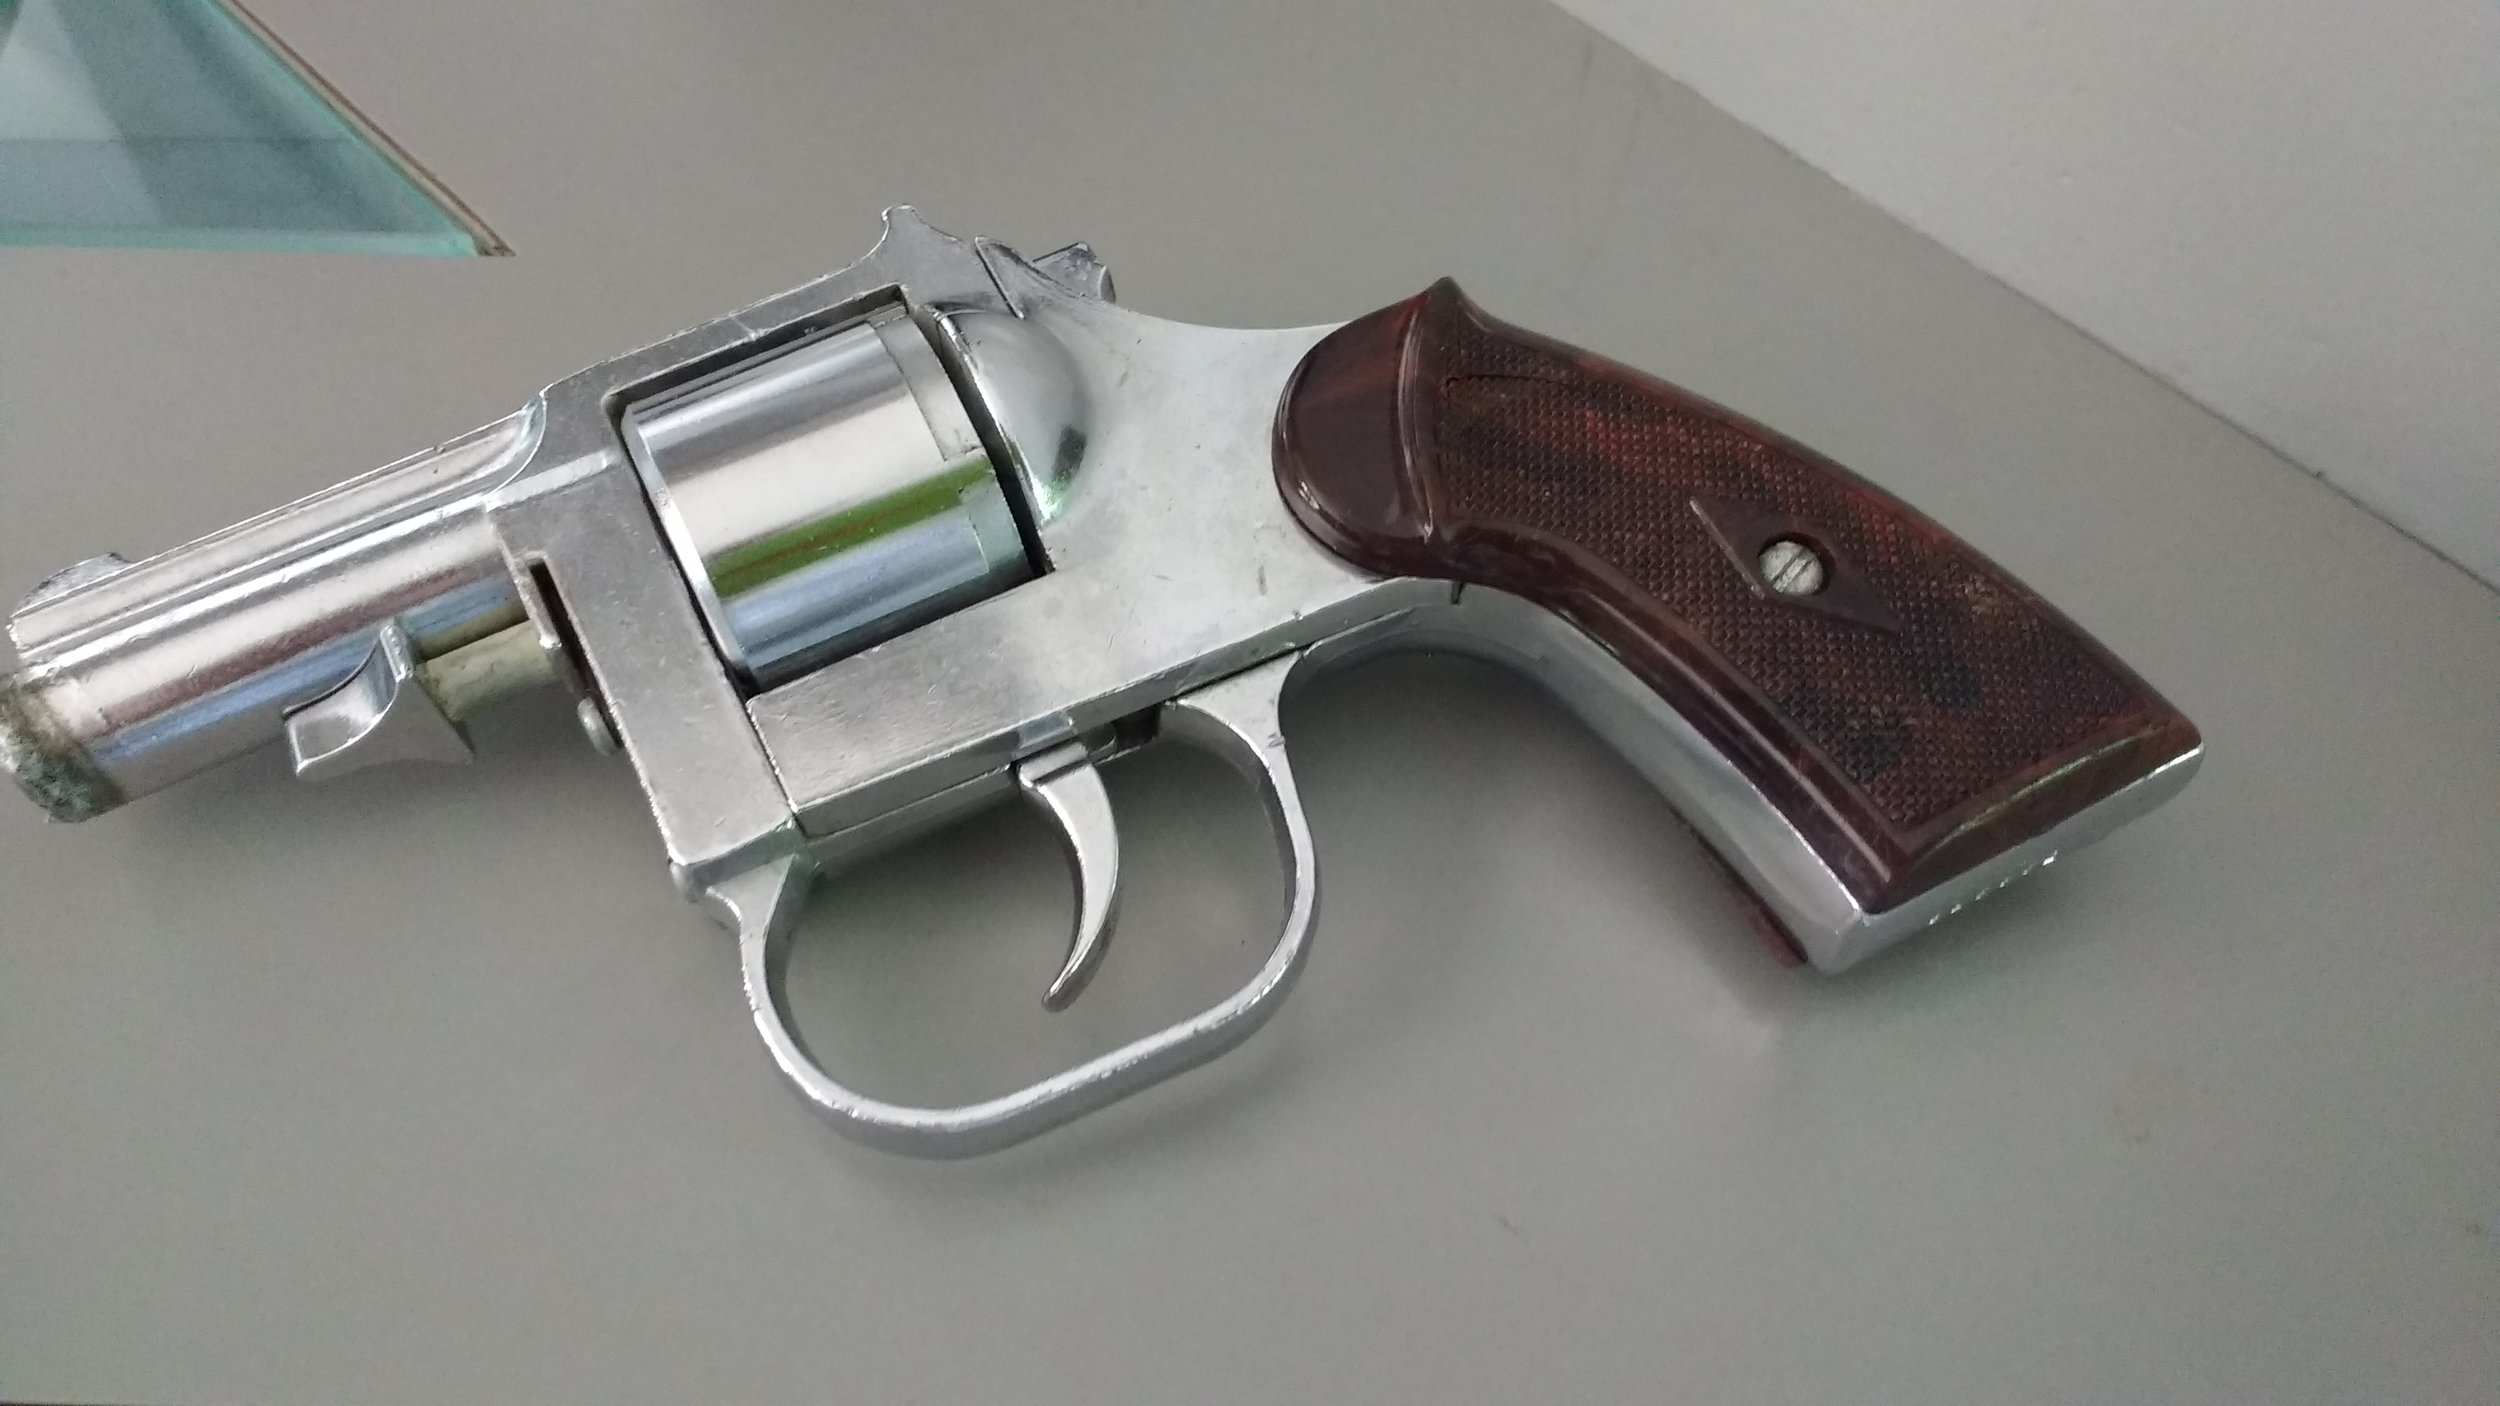 Gun from buy back program given to the artist for artwork about gun violence.